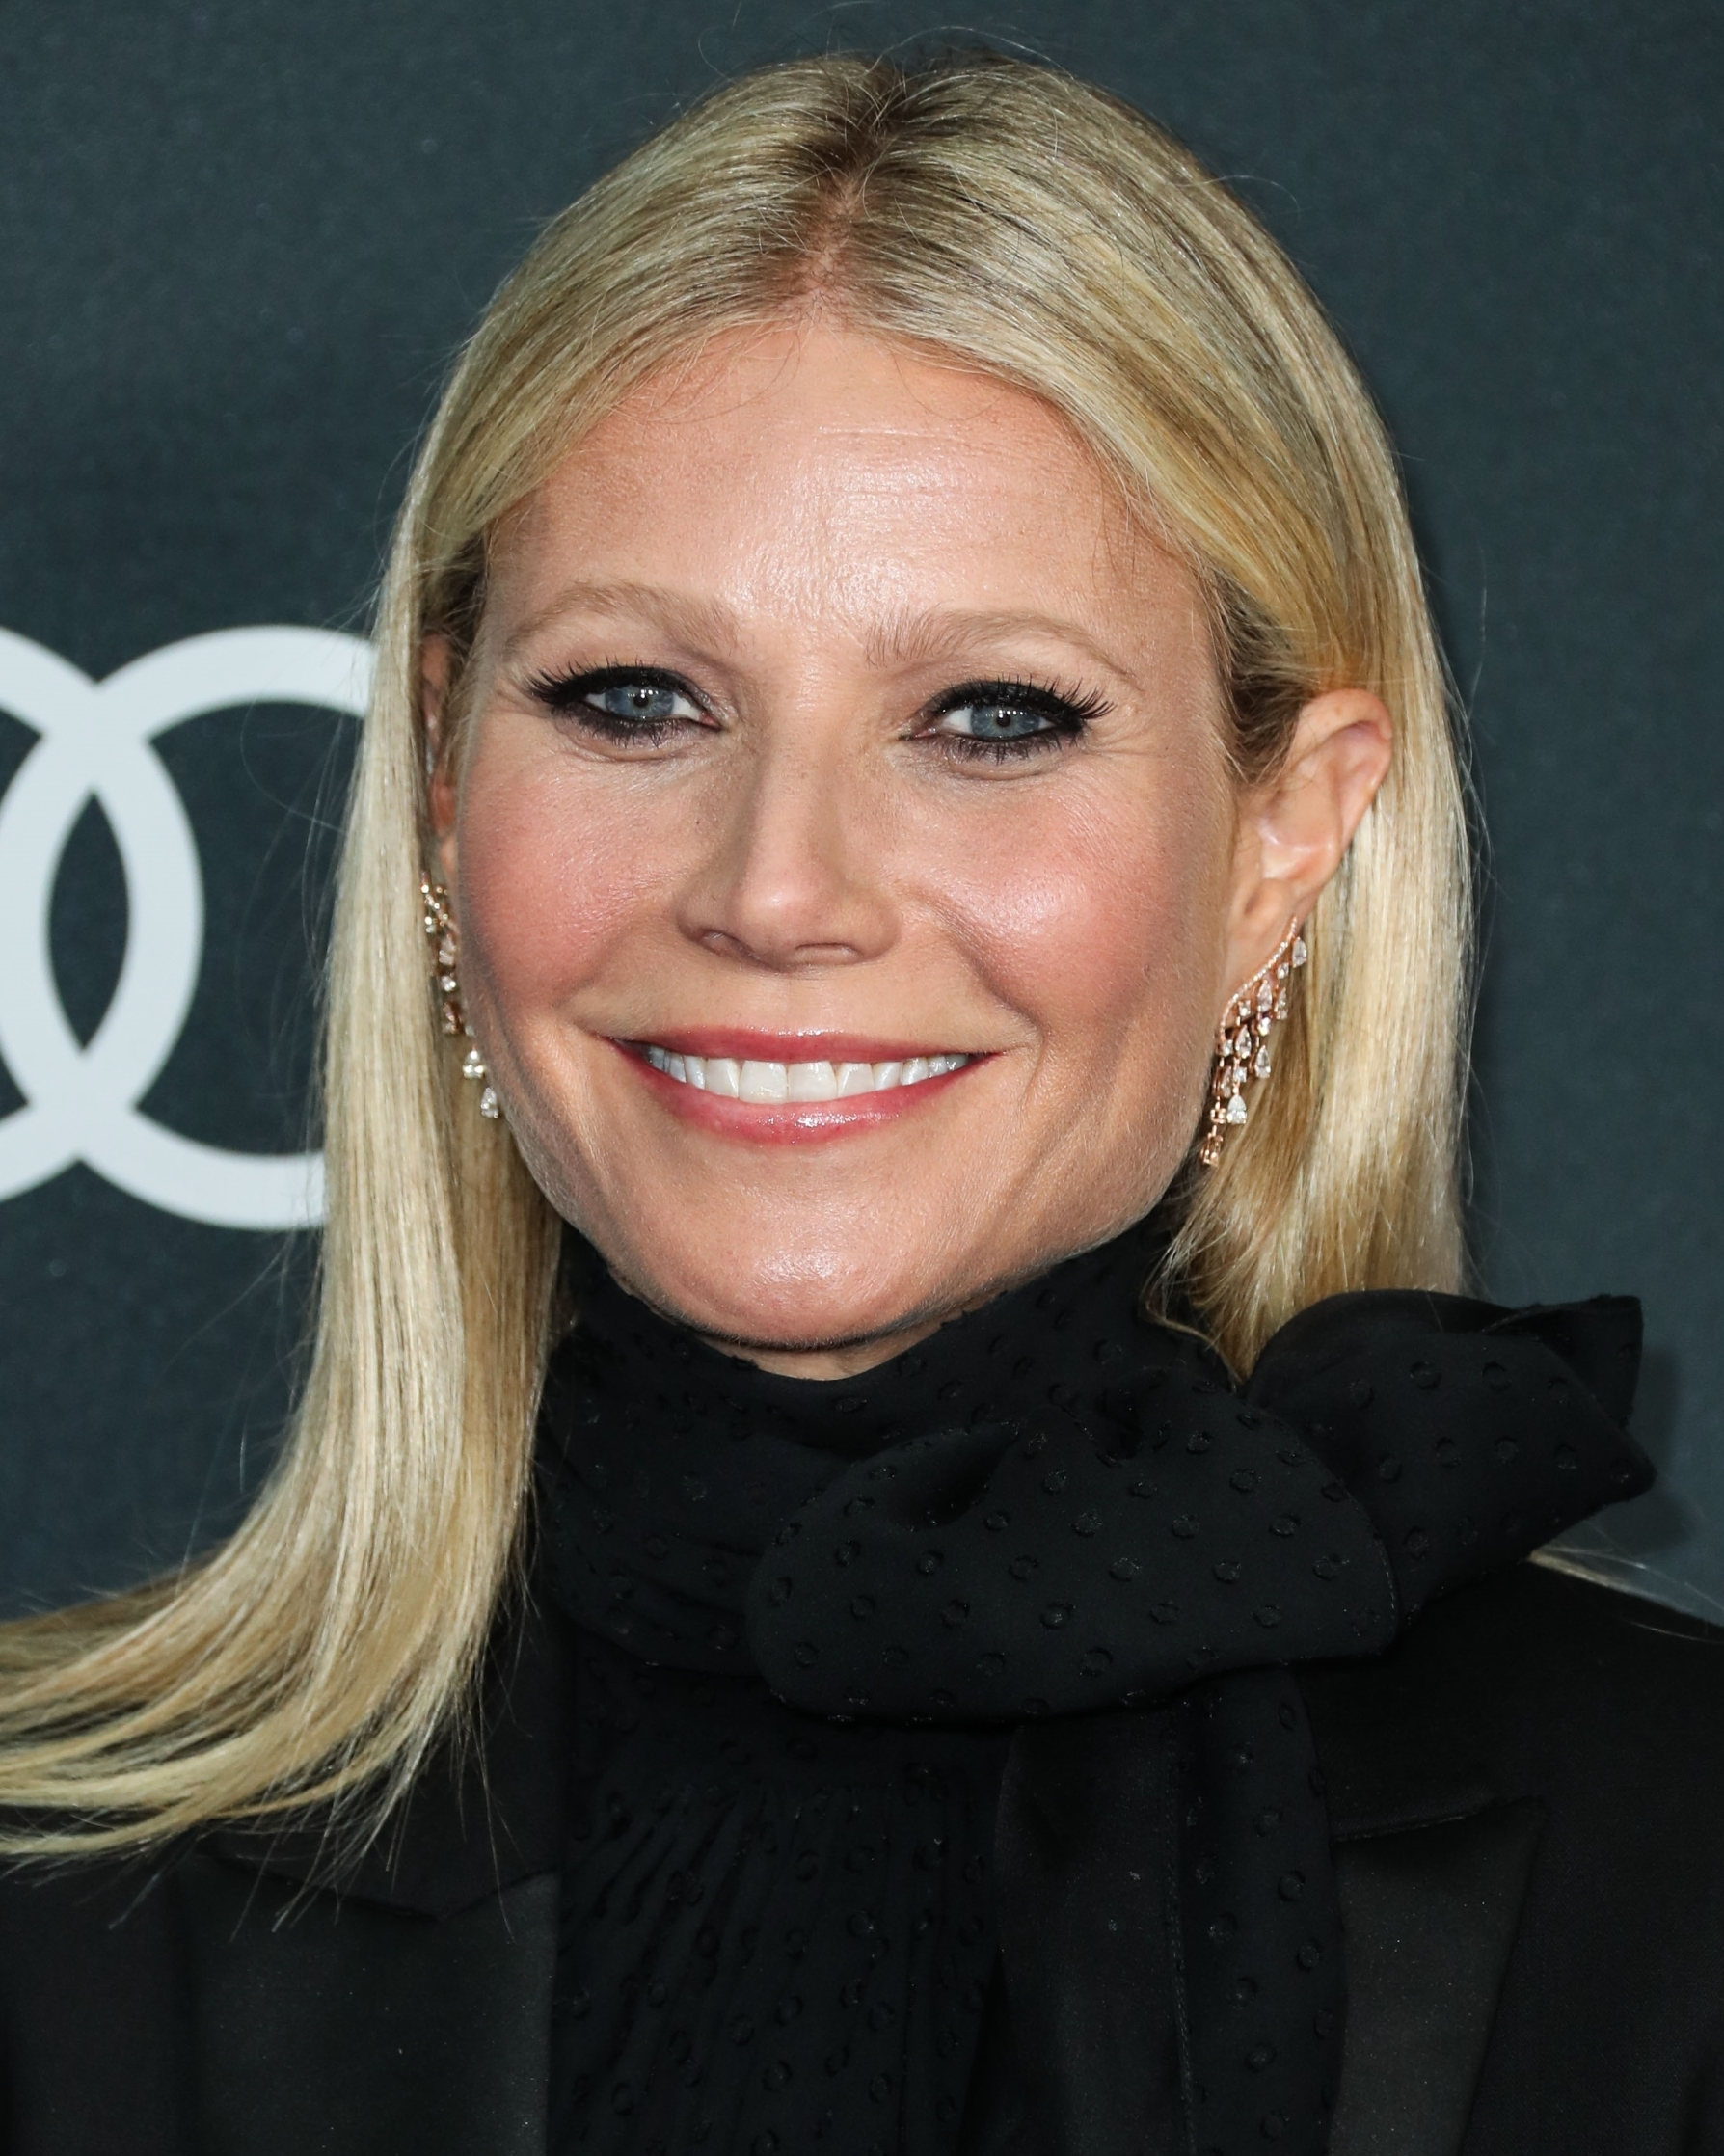 Los Angeles, CA  - The World Premiere Of Walt Disney Studios Motion Pictures and Marvel Studios' 'Avengers: Endgame' held at the Los Angeles Convention Center.  Pictured: Gwyneth Paltrow  BACKGRID USA 22 APRIL 2019,Image: 427645638, License: Rights-managed, Restrictions: , Model Release: no, Credit line: Image Press / BACKGRID / Backgrid USA / Profimedia